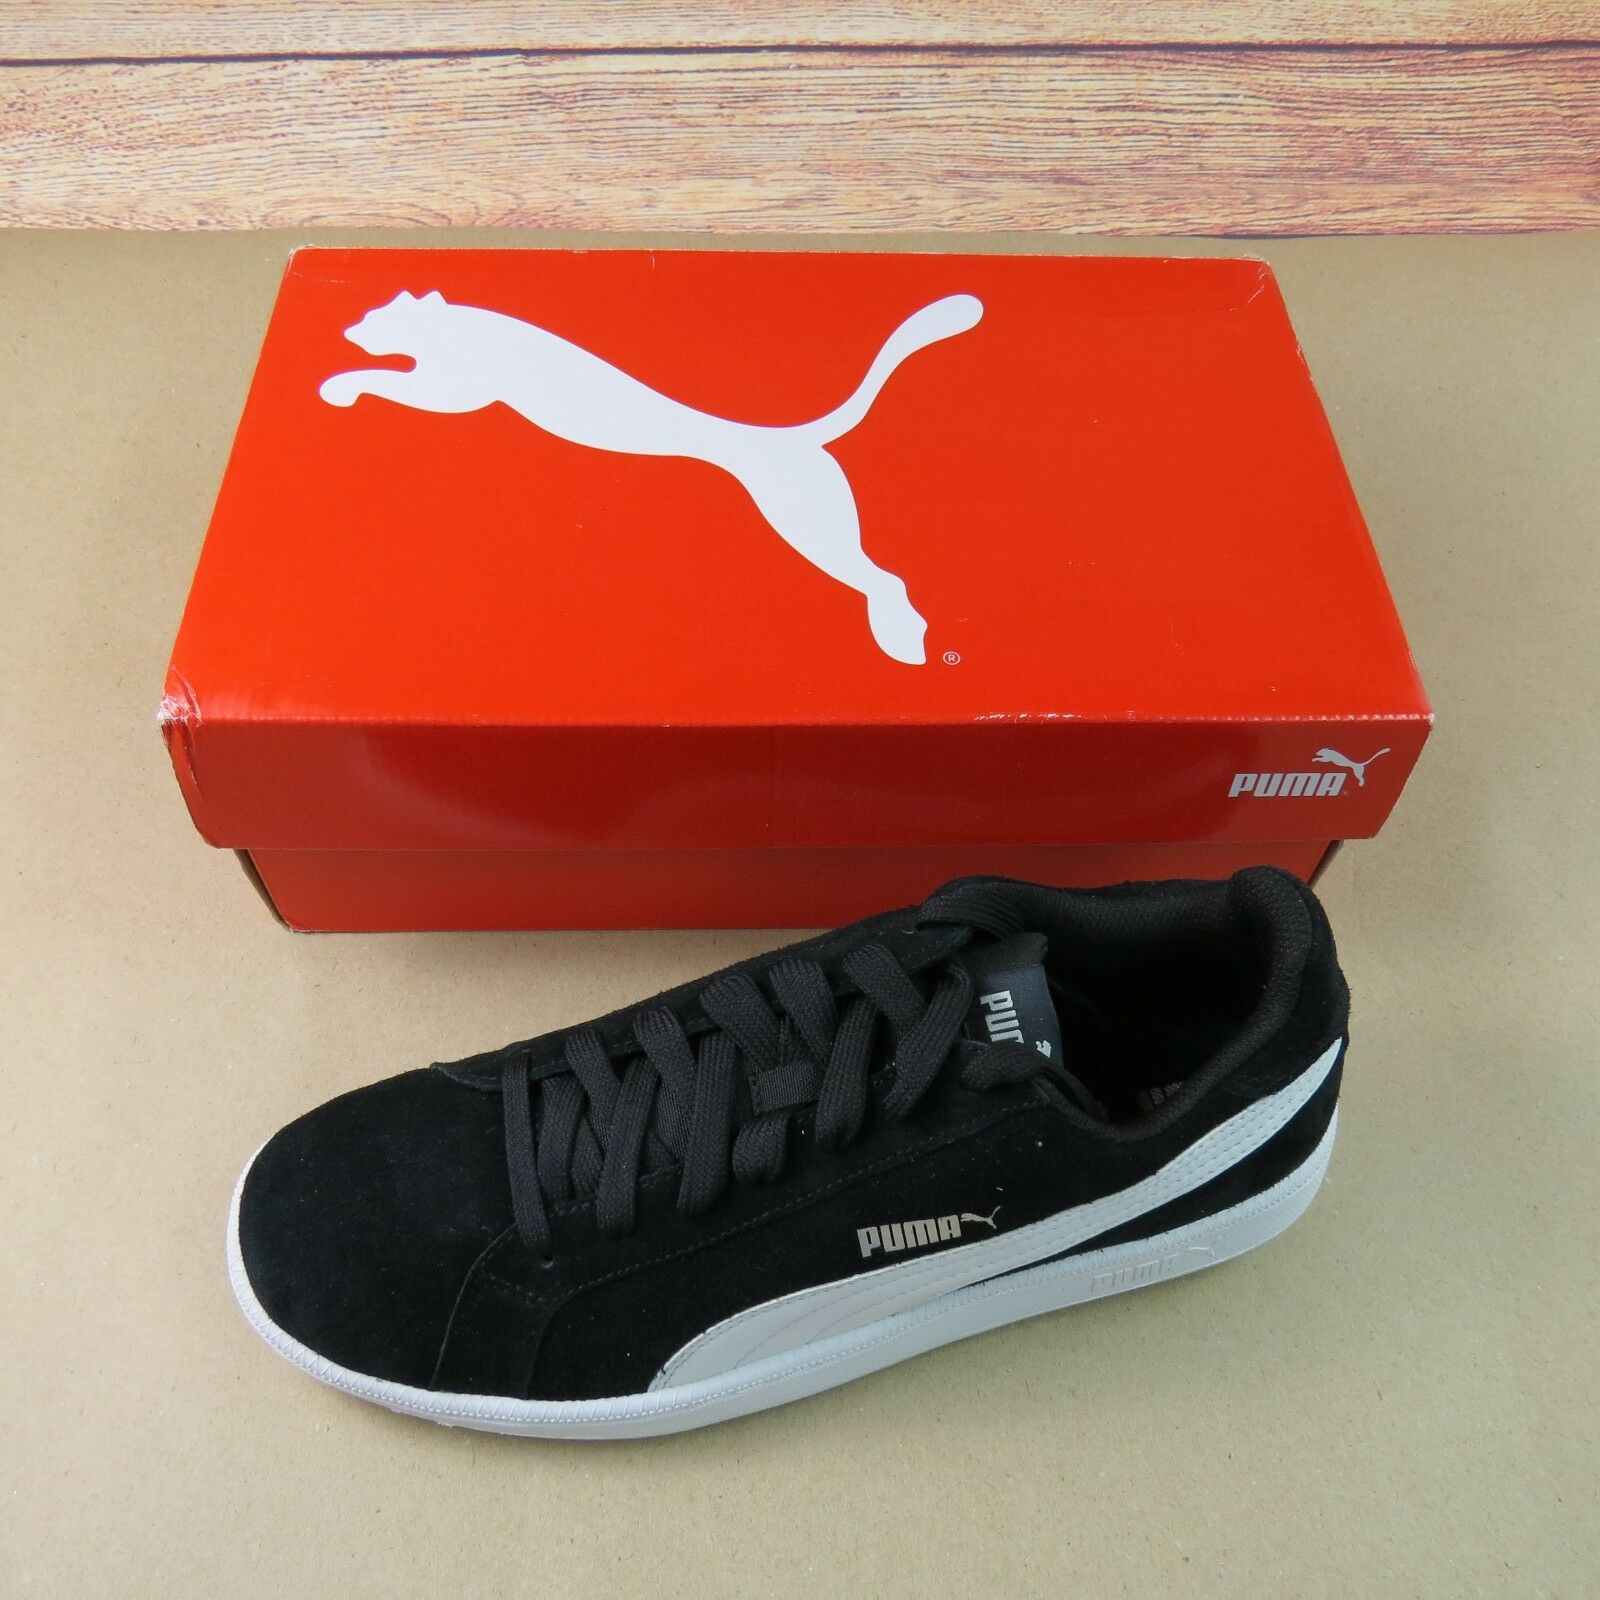 Details about Puma Smash SD Size 10 Black and White Suede Fashion Sneakers 361730 01